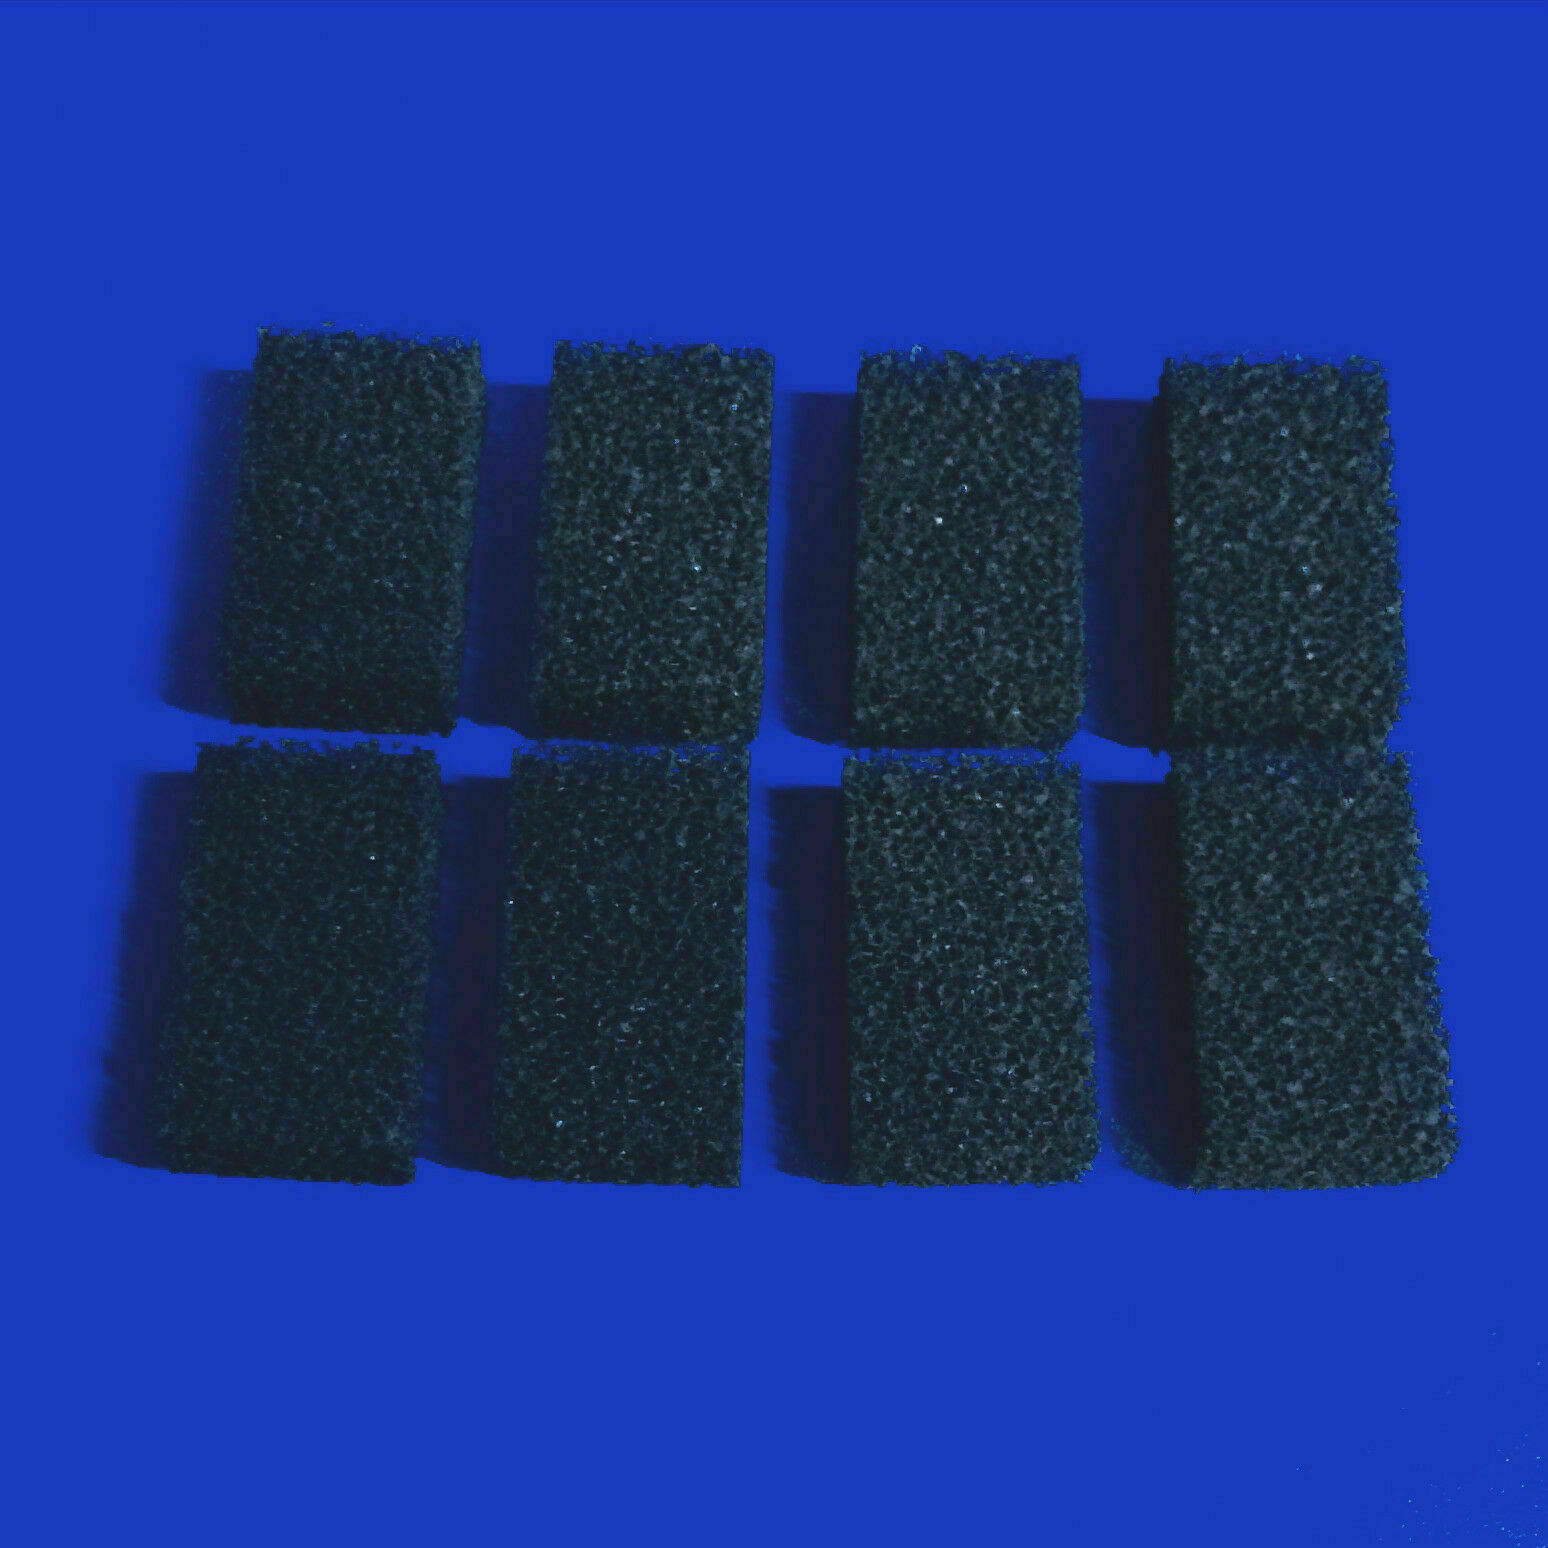 8 x COMPATIBLE INTERPET PF MINI CARBON FOAM REPLACEMENTS POWER FILTER FISH TANK